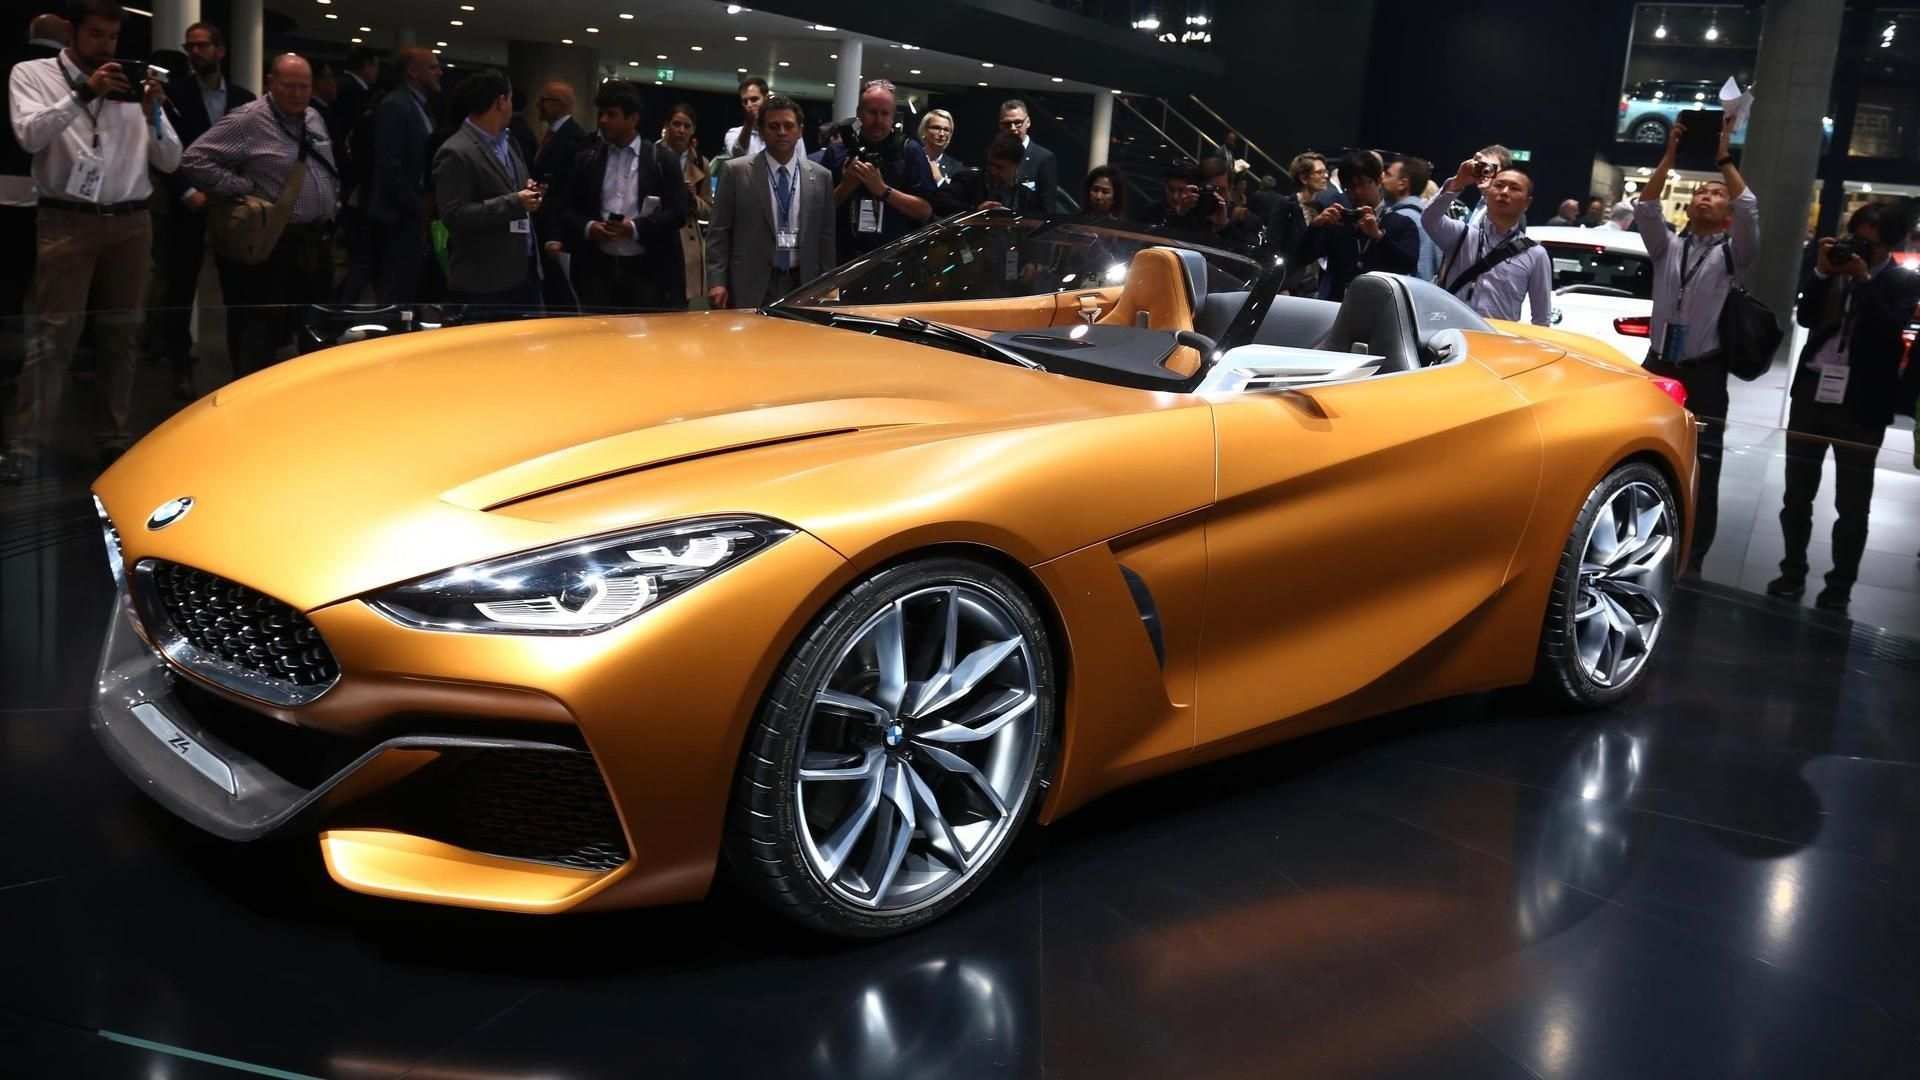 82 The New Bmw Z4 2019 Release Date Review And Specs Pictures by New Bmw Z4 2019 Release Date Review And Specs